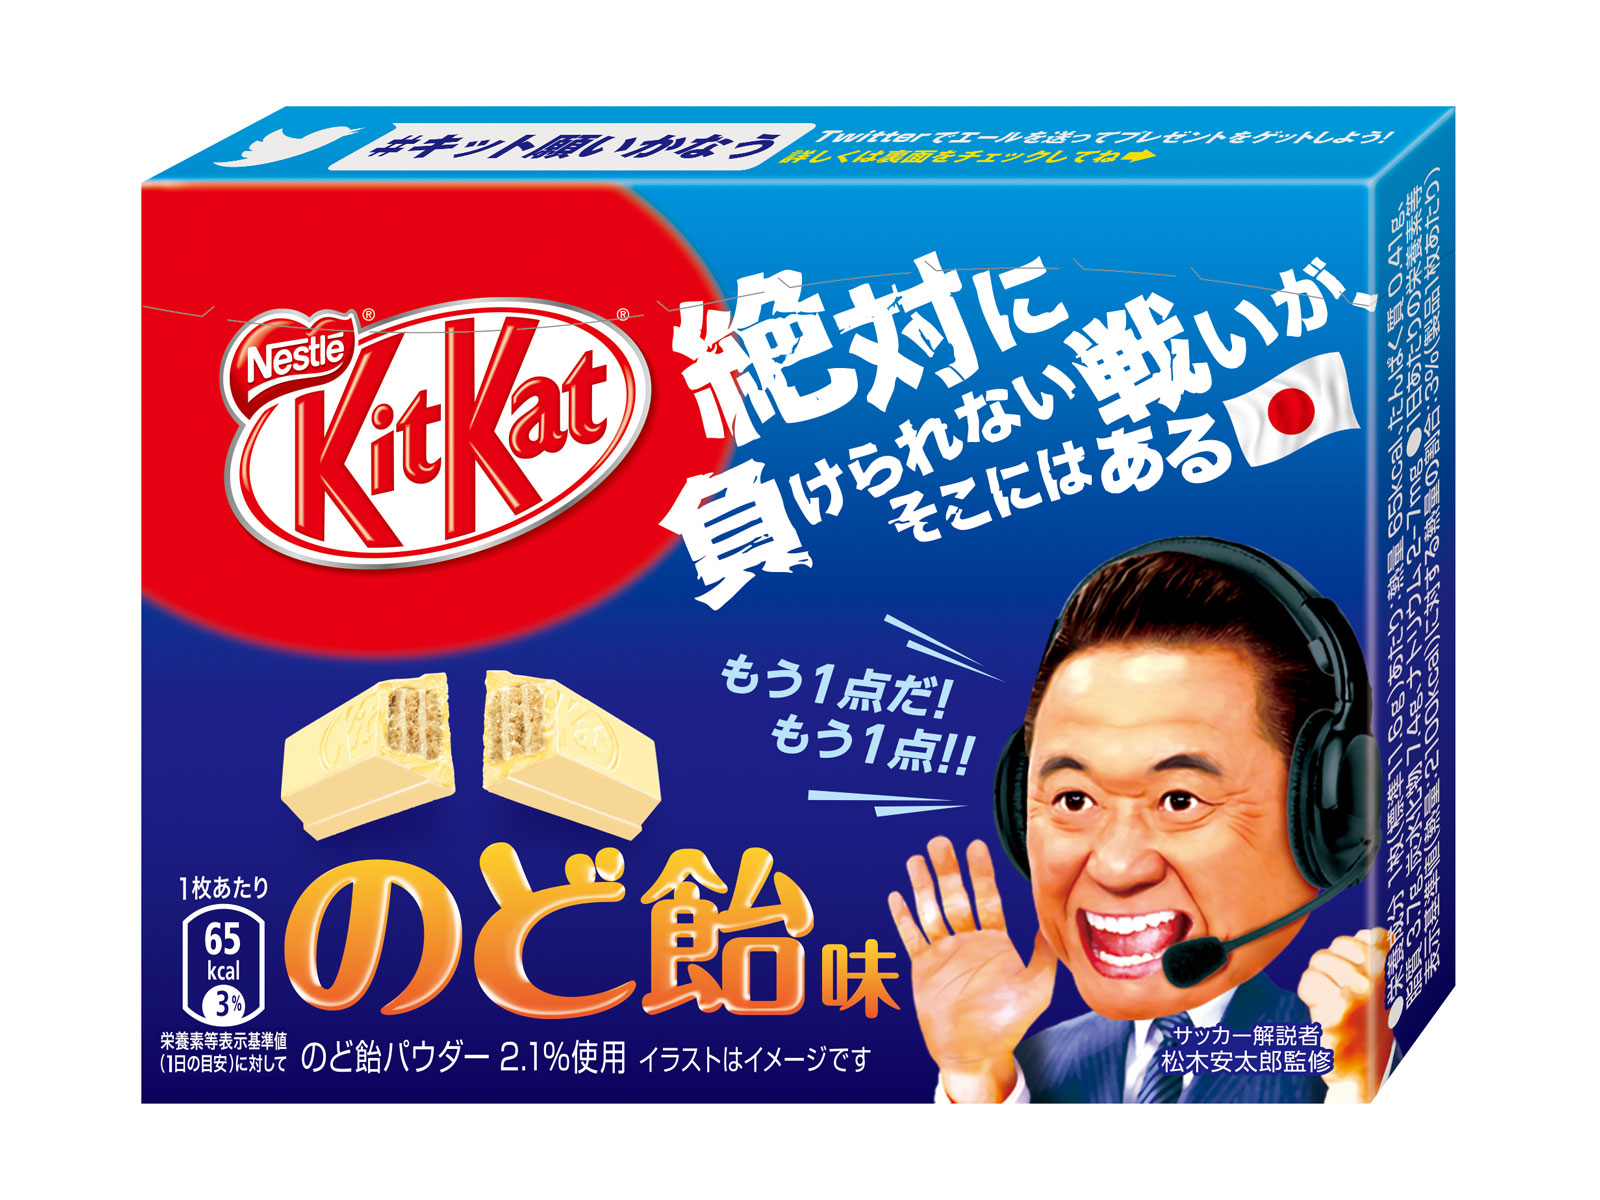 Cough-Drop-Flavored Kit Kats Debut in Japan